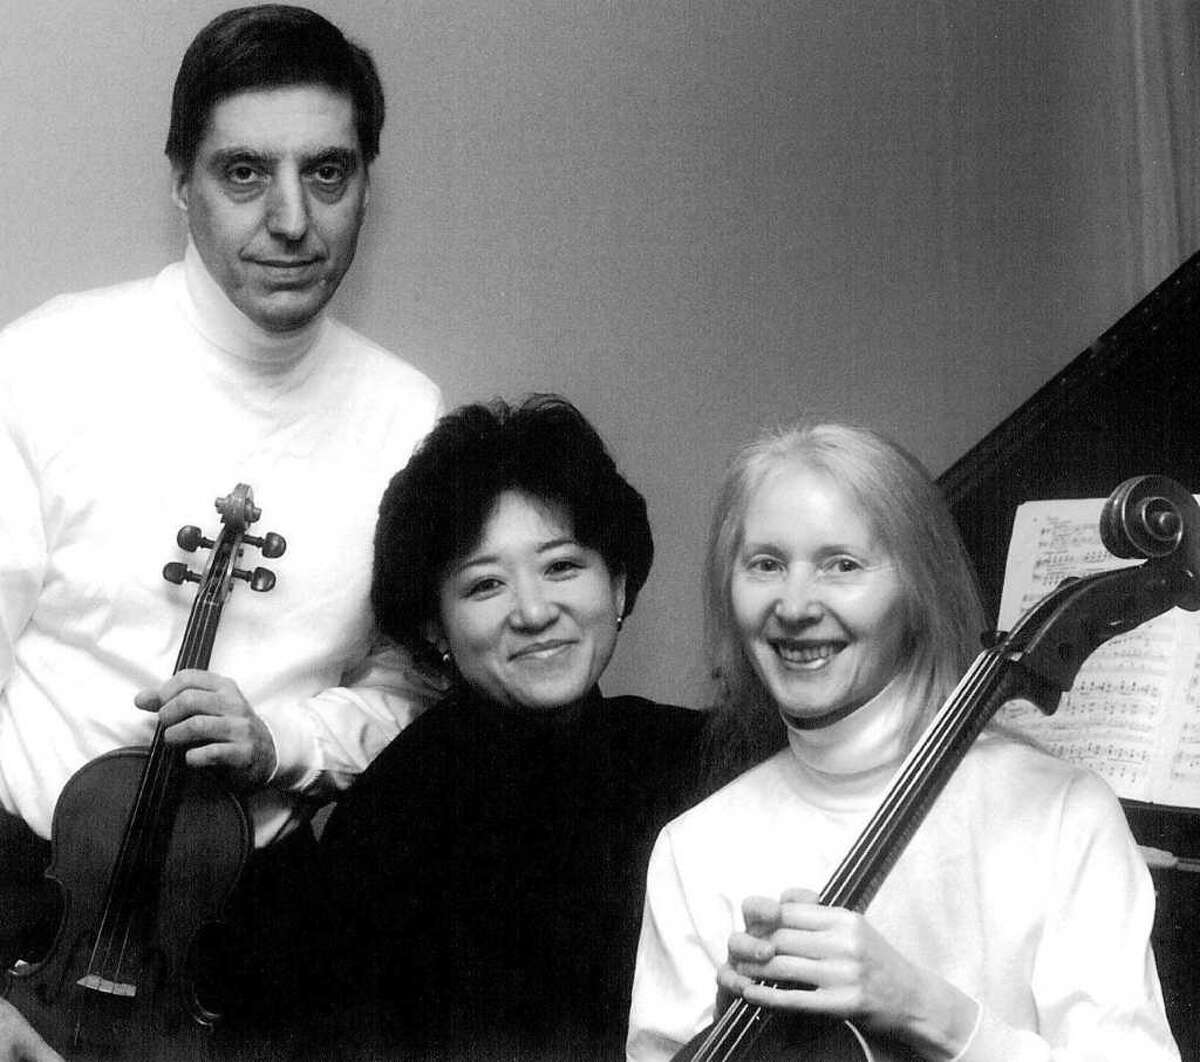 The Errante-Cho Trio includes, from left, violinist Richard Errante, pianist Kyong Cho and cellist Lois Errante. They are slated to perform in Westport Sunday, Oct. Oct. 2.